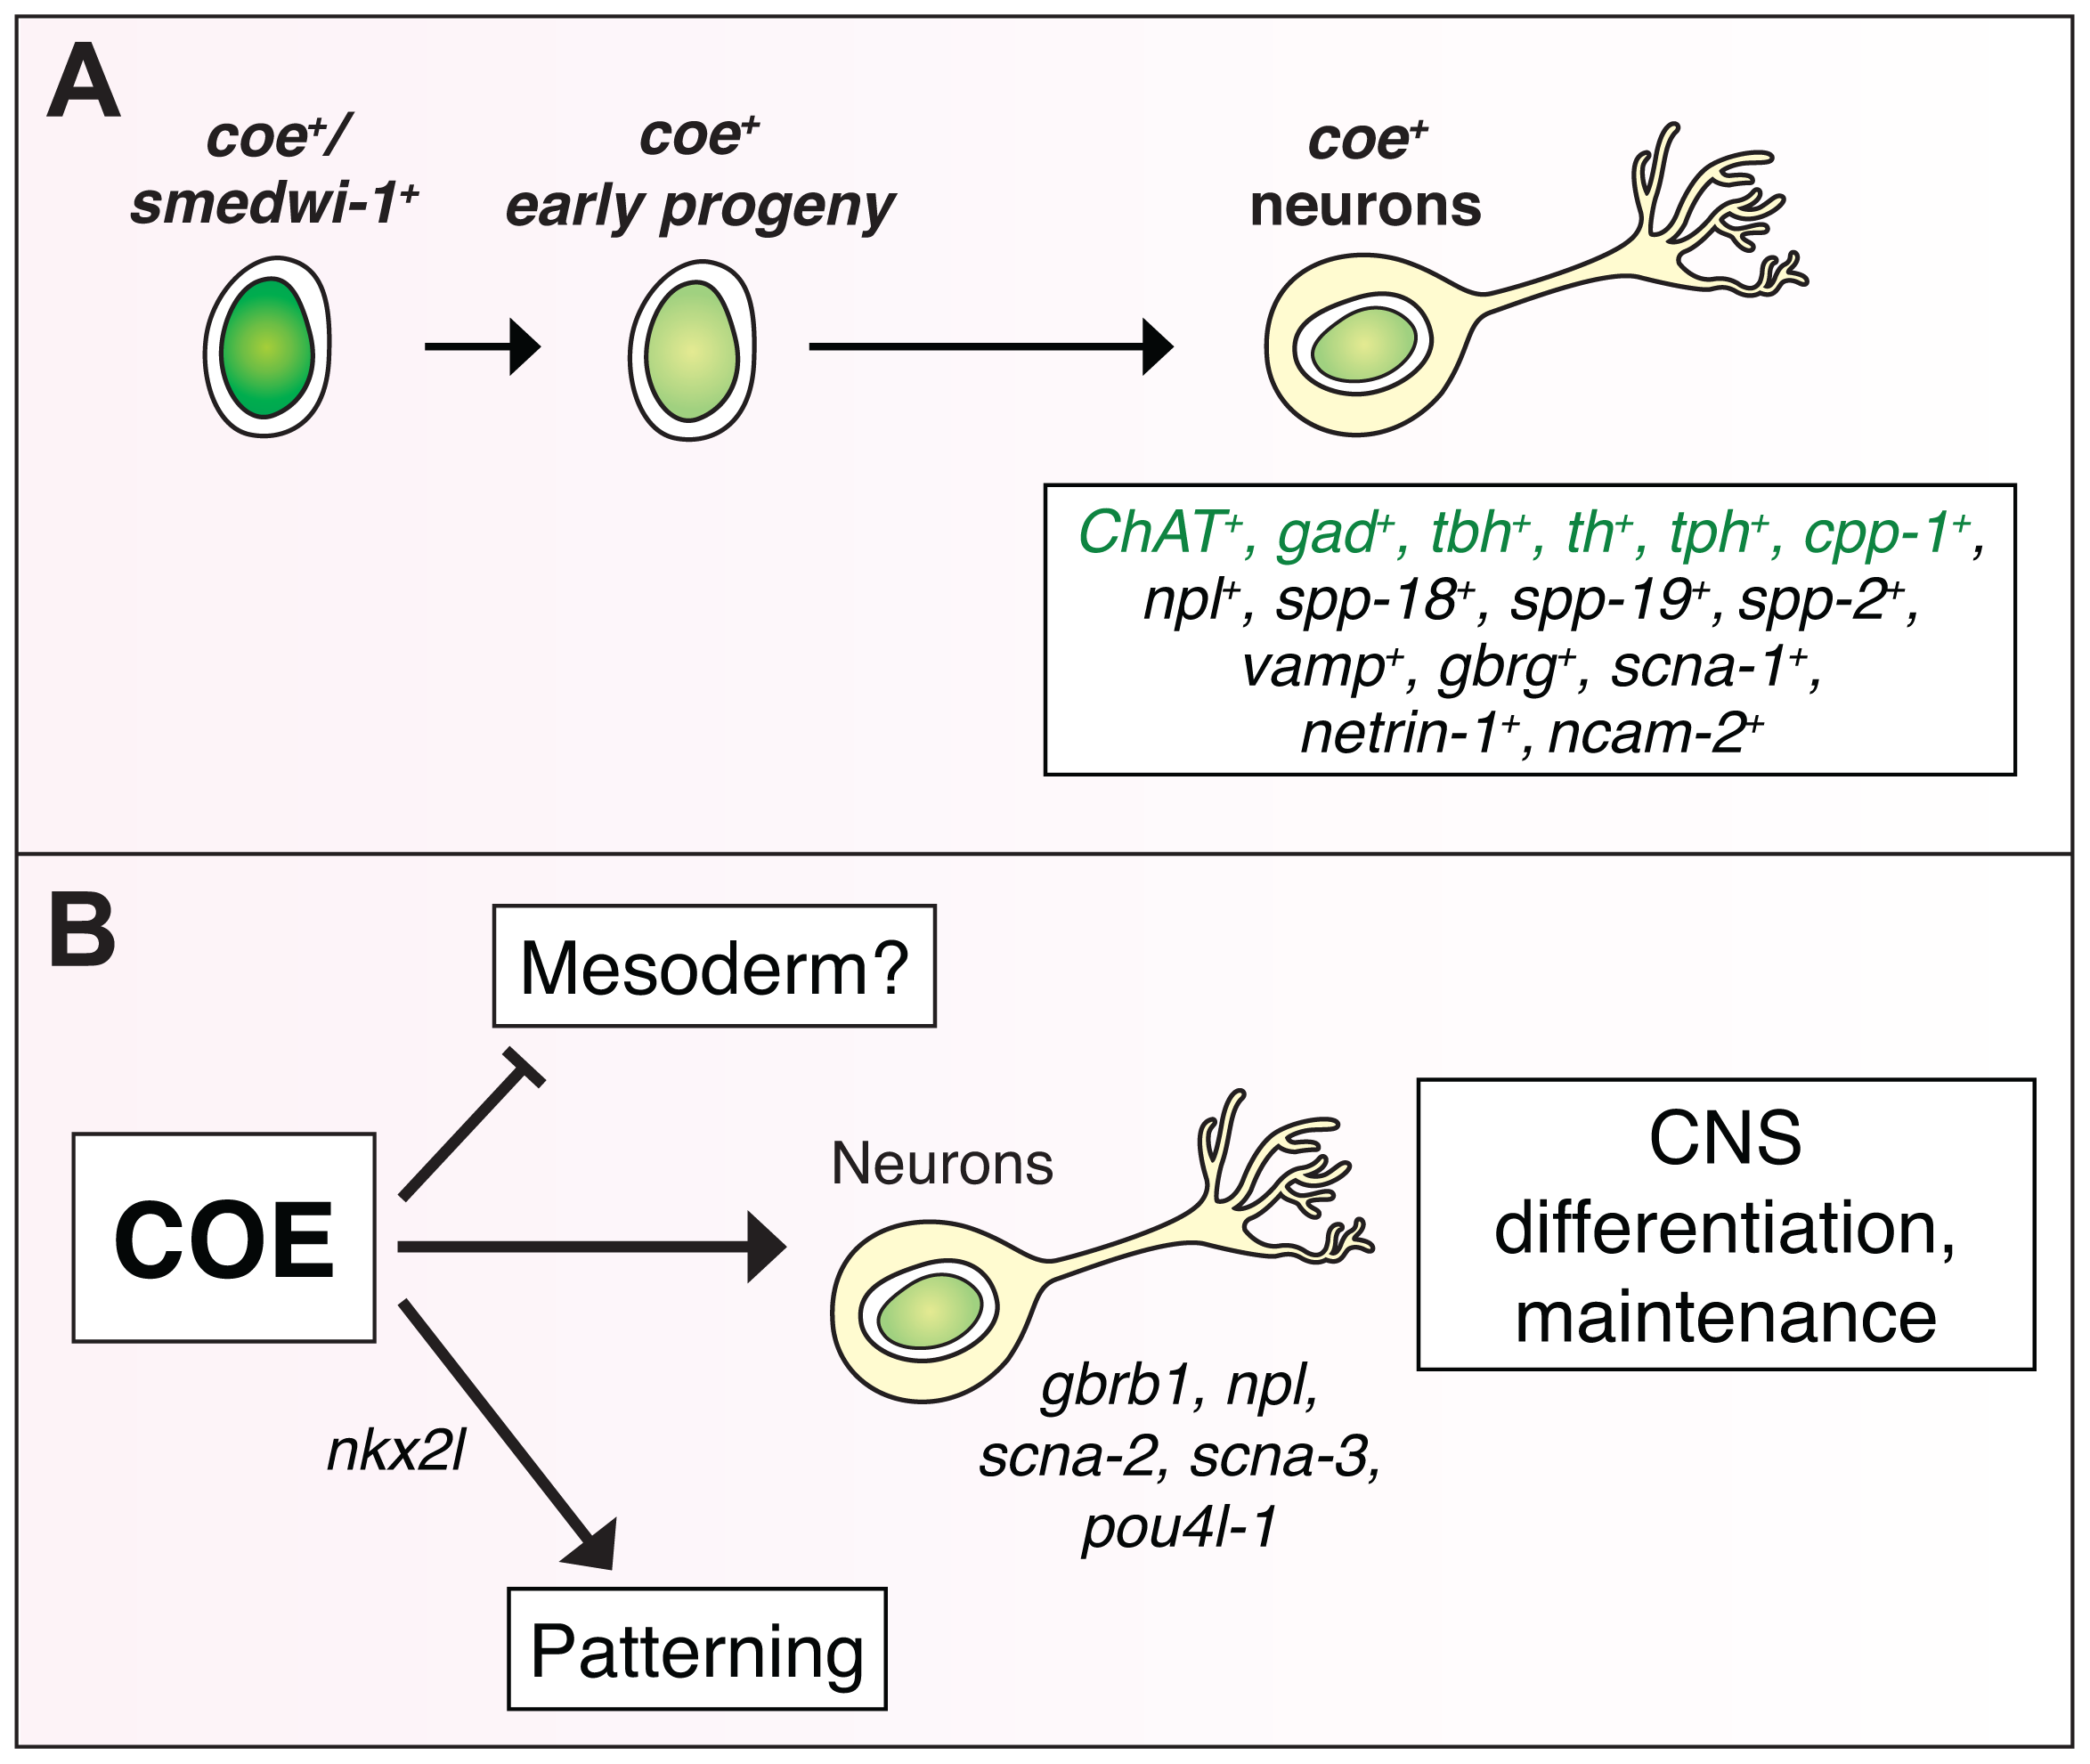 COE function is required for differentiation and maintenance of diverse neuron types.